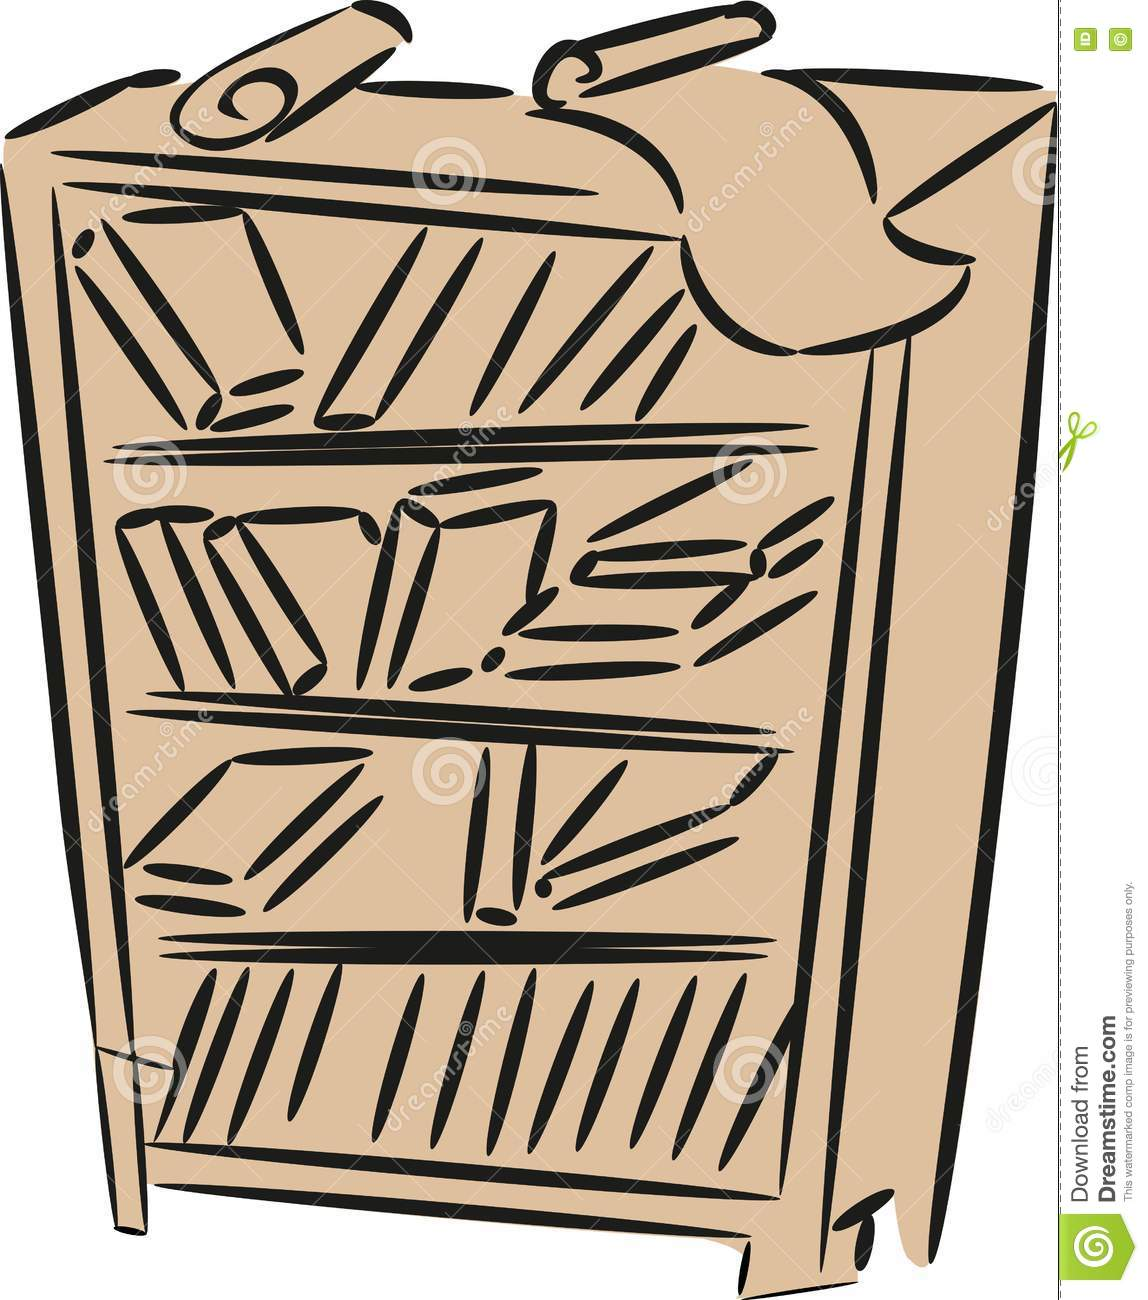 Download Sketch Of Bookshelf Stock Vector Illustration Drawing